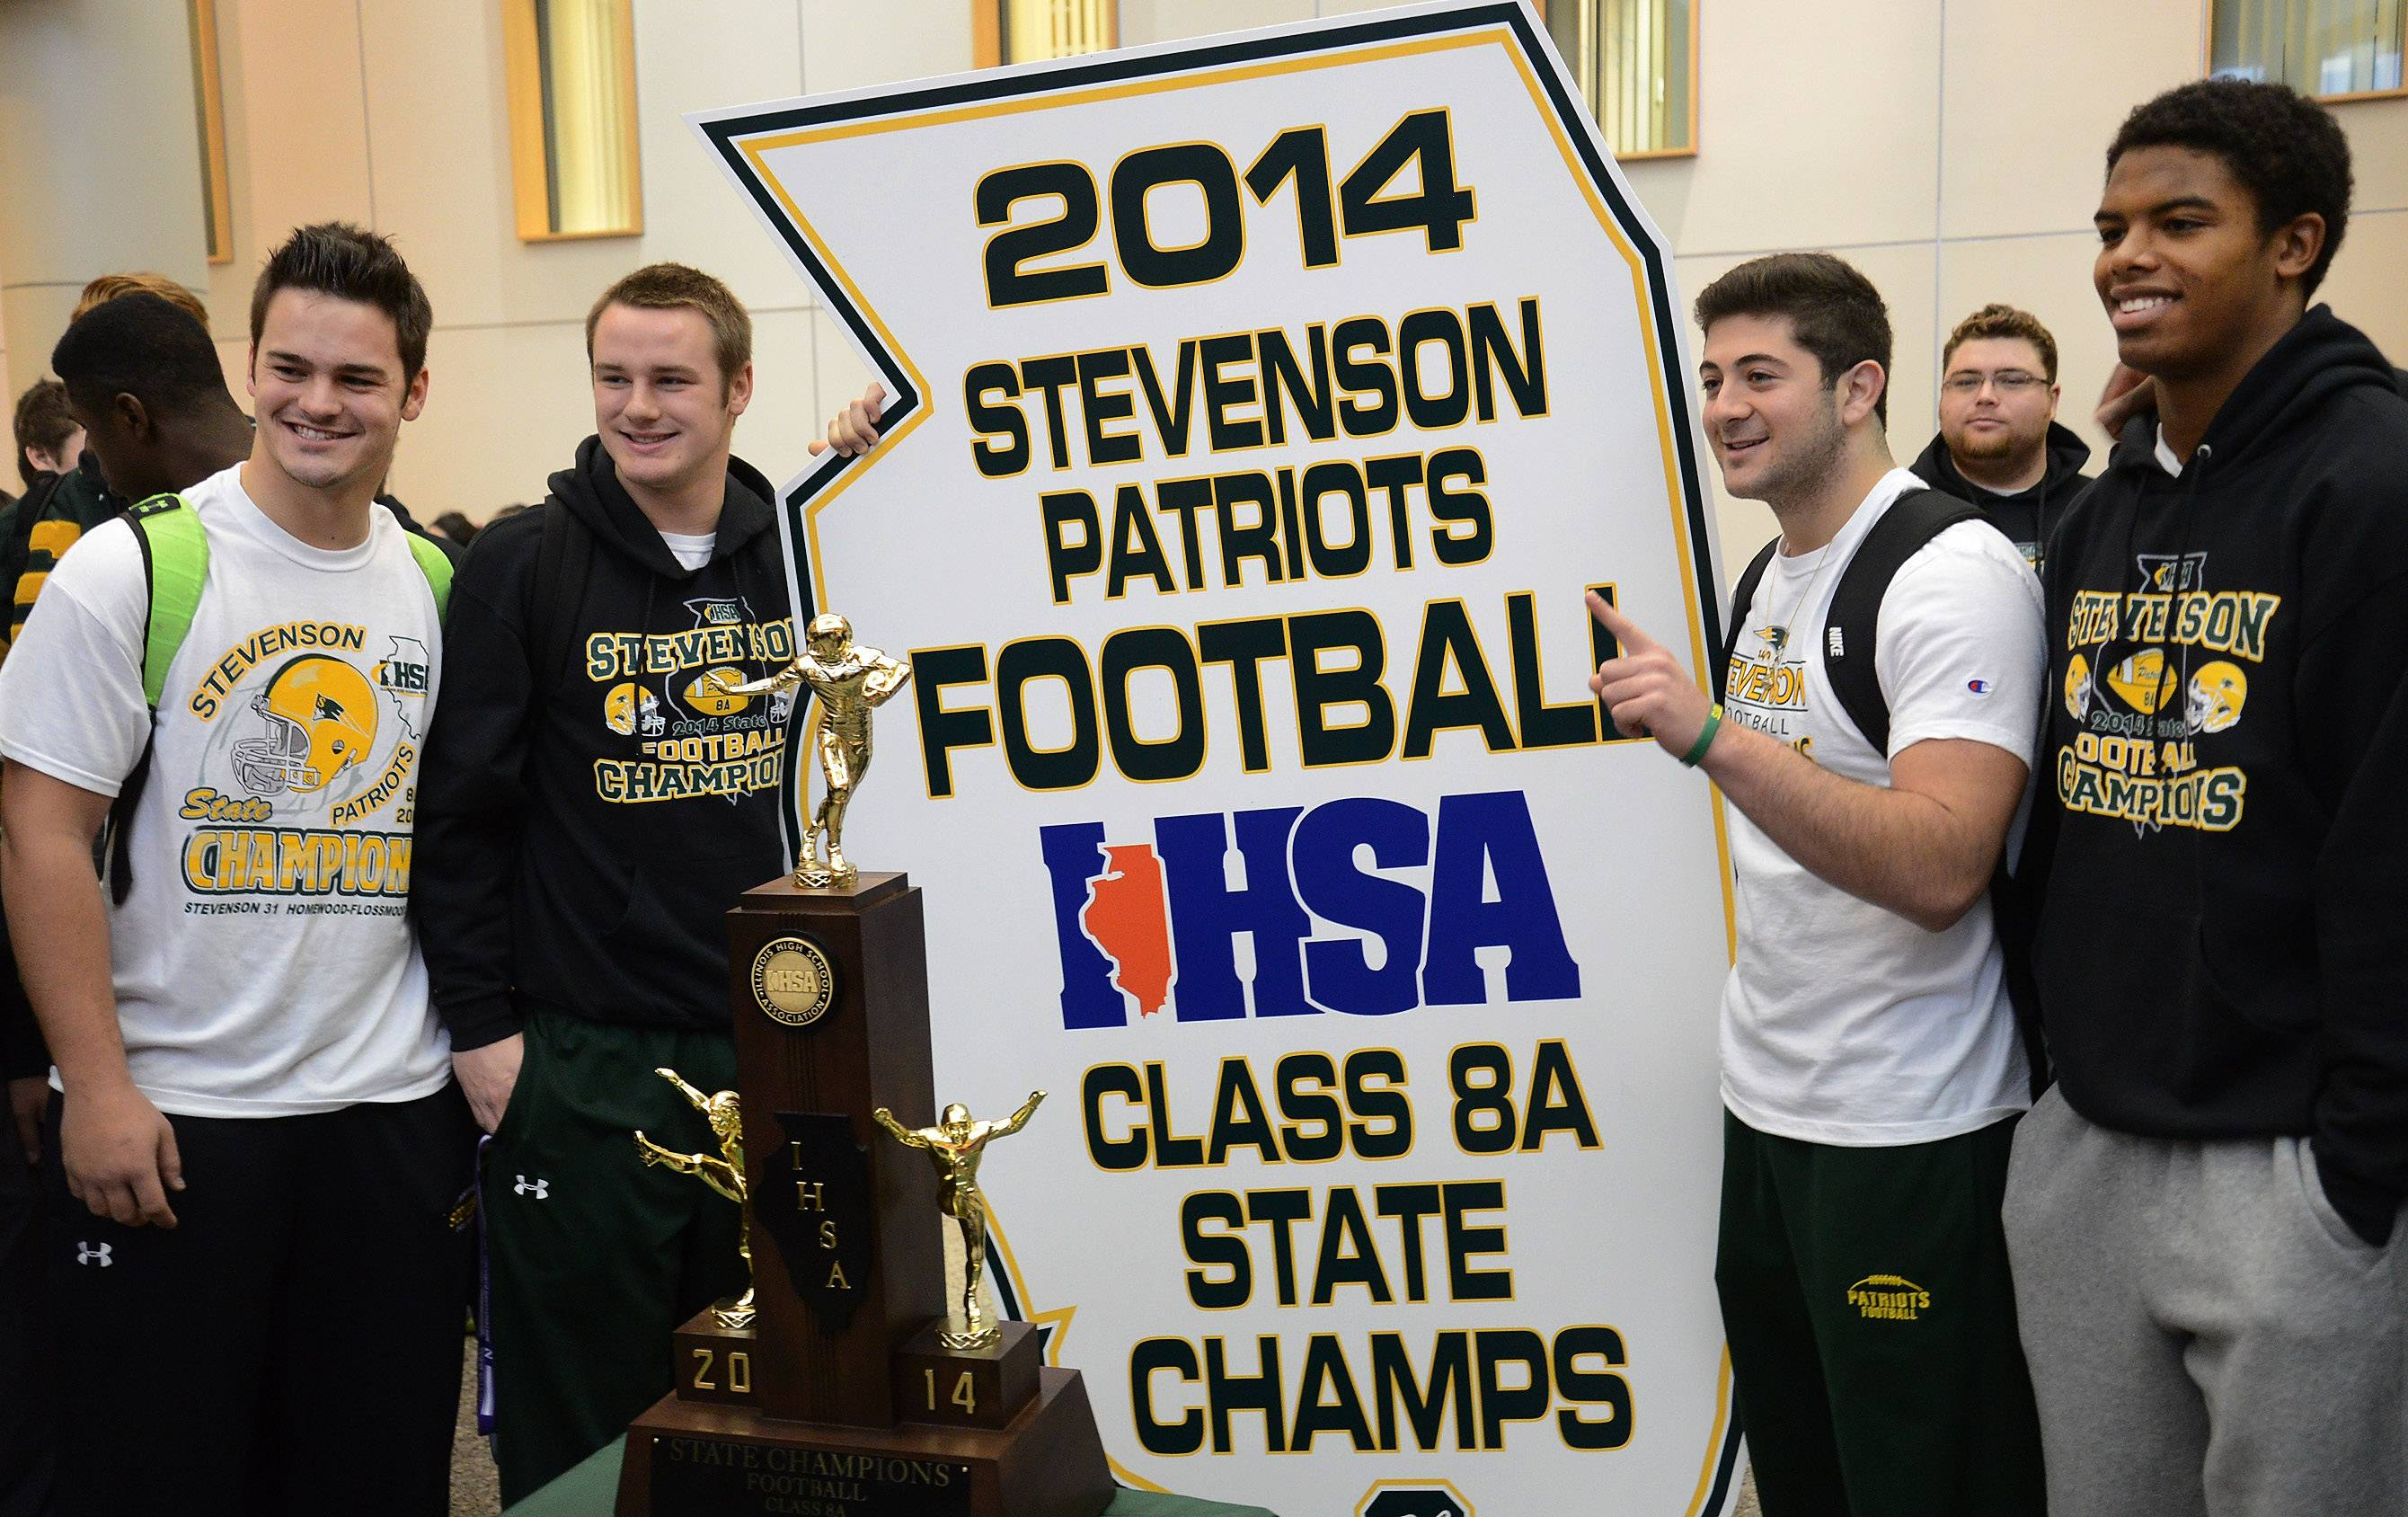 Stevenson High honors football team after state title win